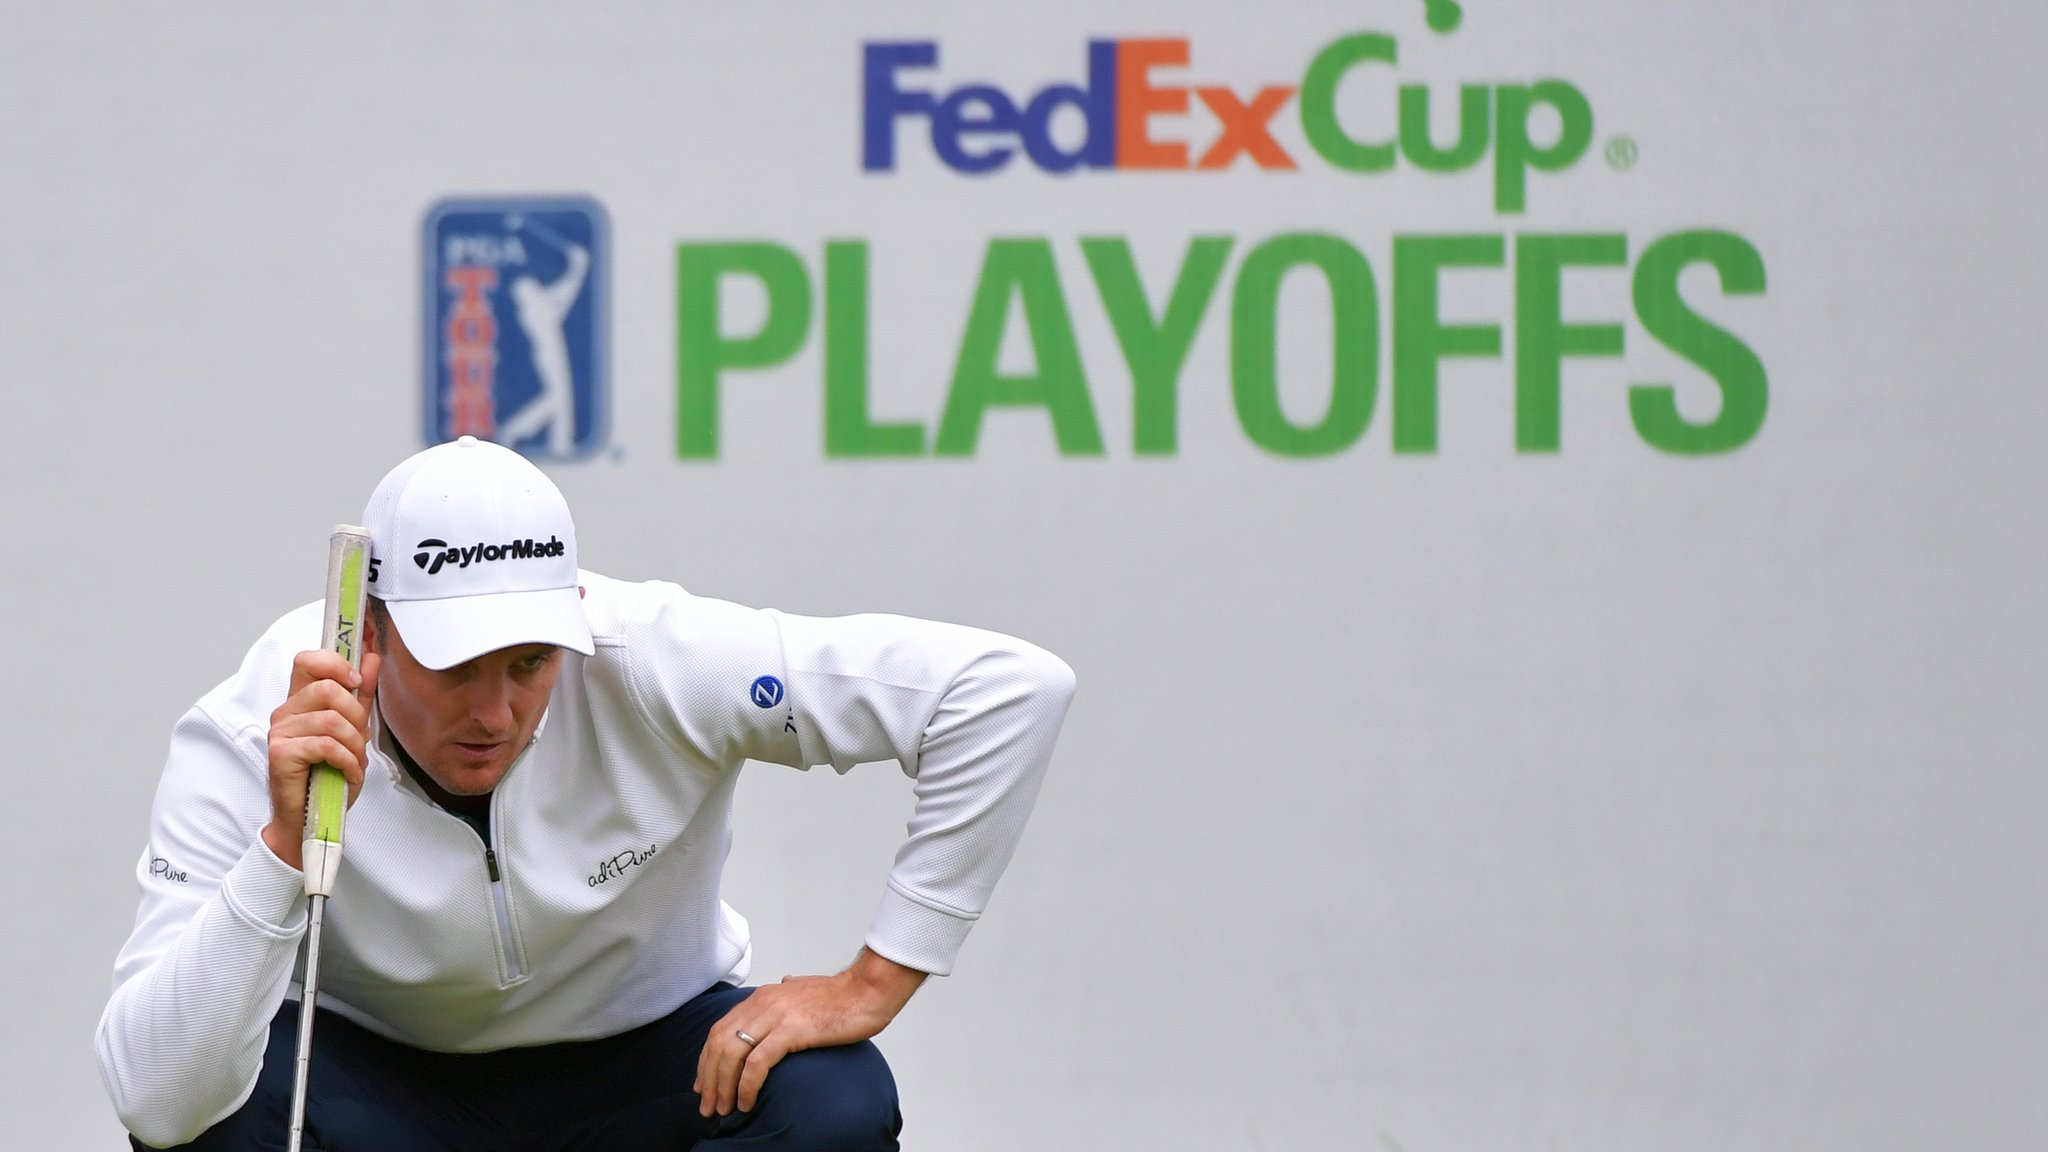 FedEx Cup: PGA Tour announces Tour Championship revamp for 2019